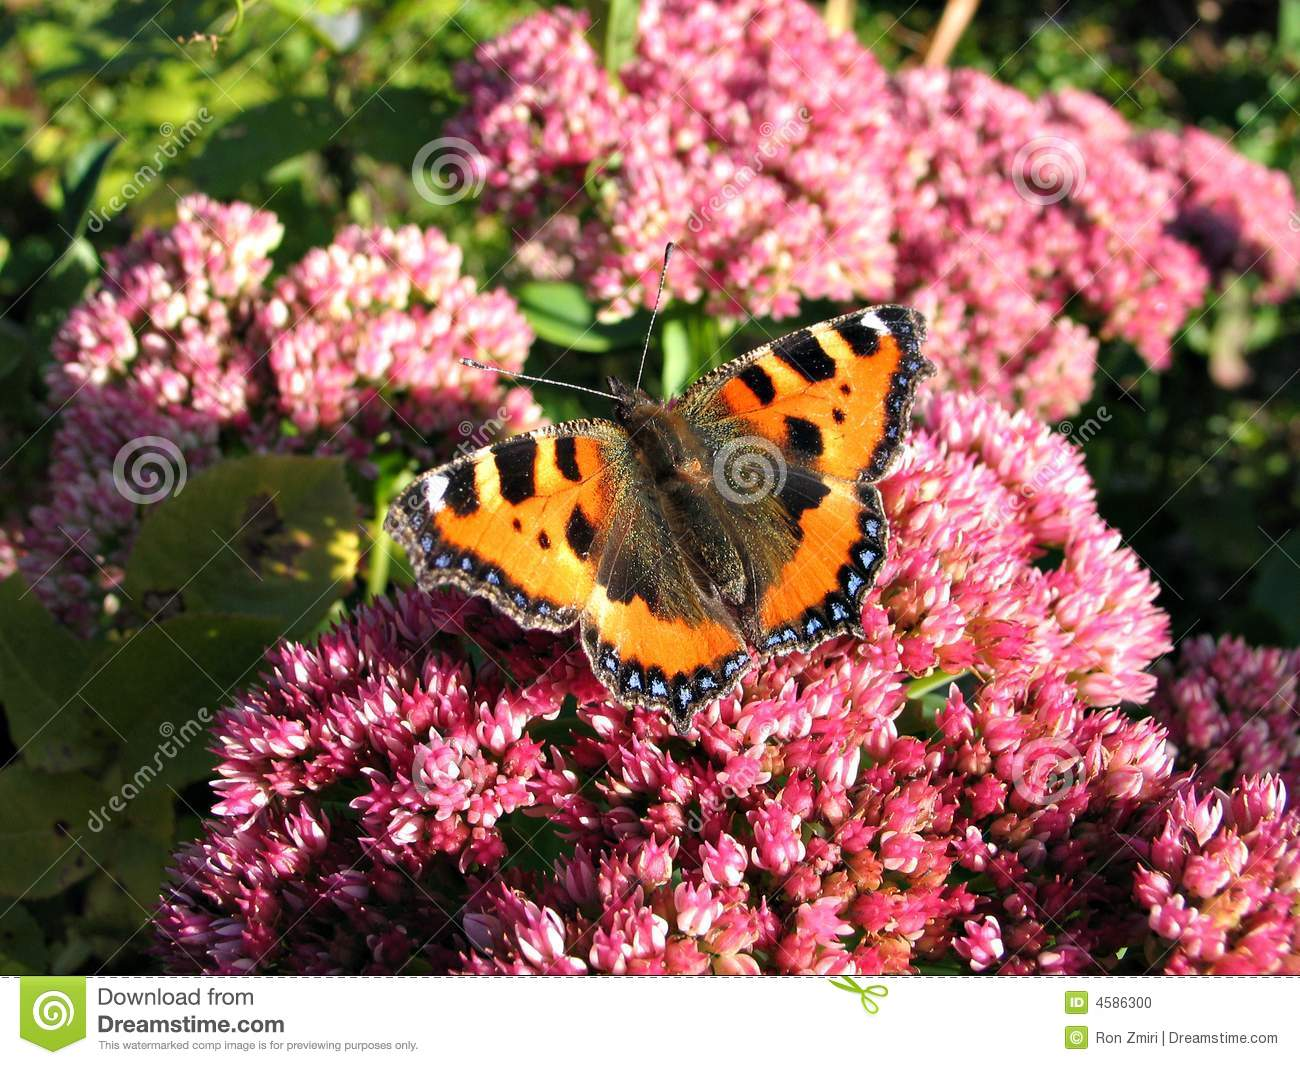 Colorful monarch butterfly with spread wings on a flower